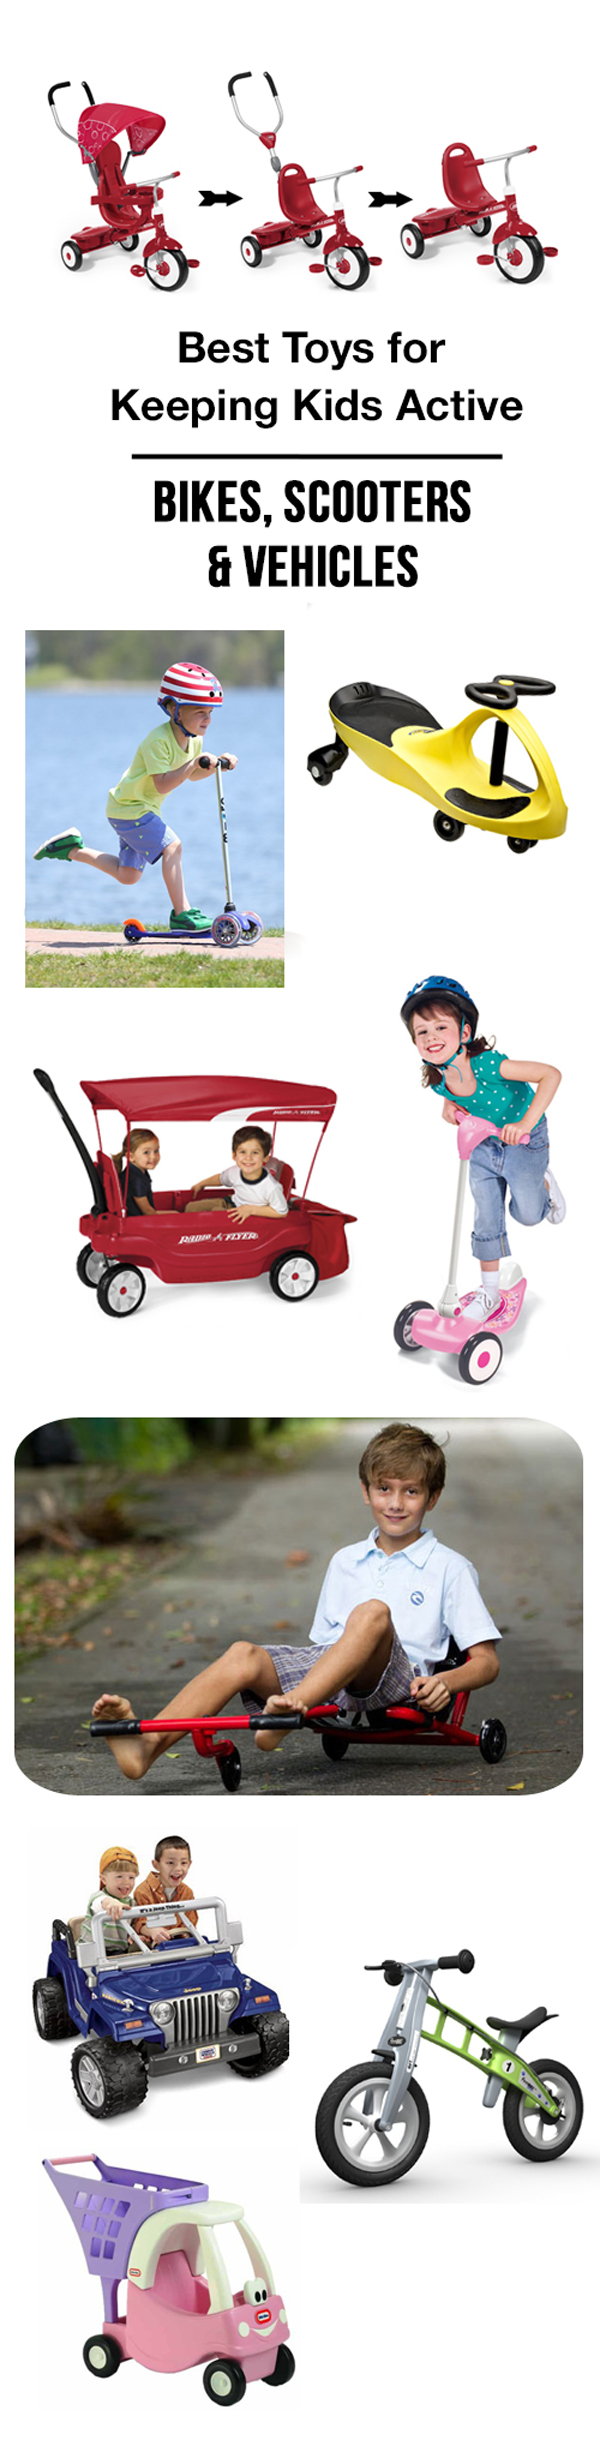 MPMK Outdoor Toy Gift Guide - Best bikes, trikes, scooters and more to get kids moving outside.